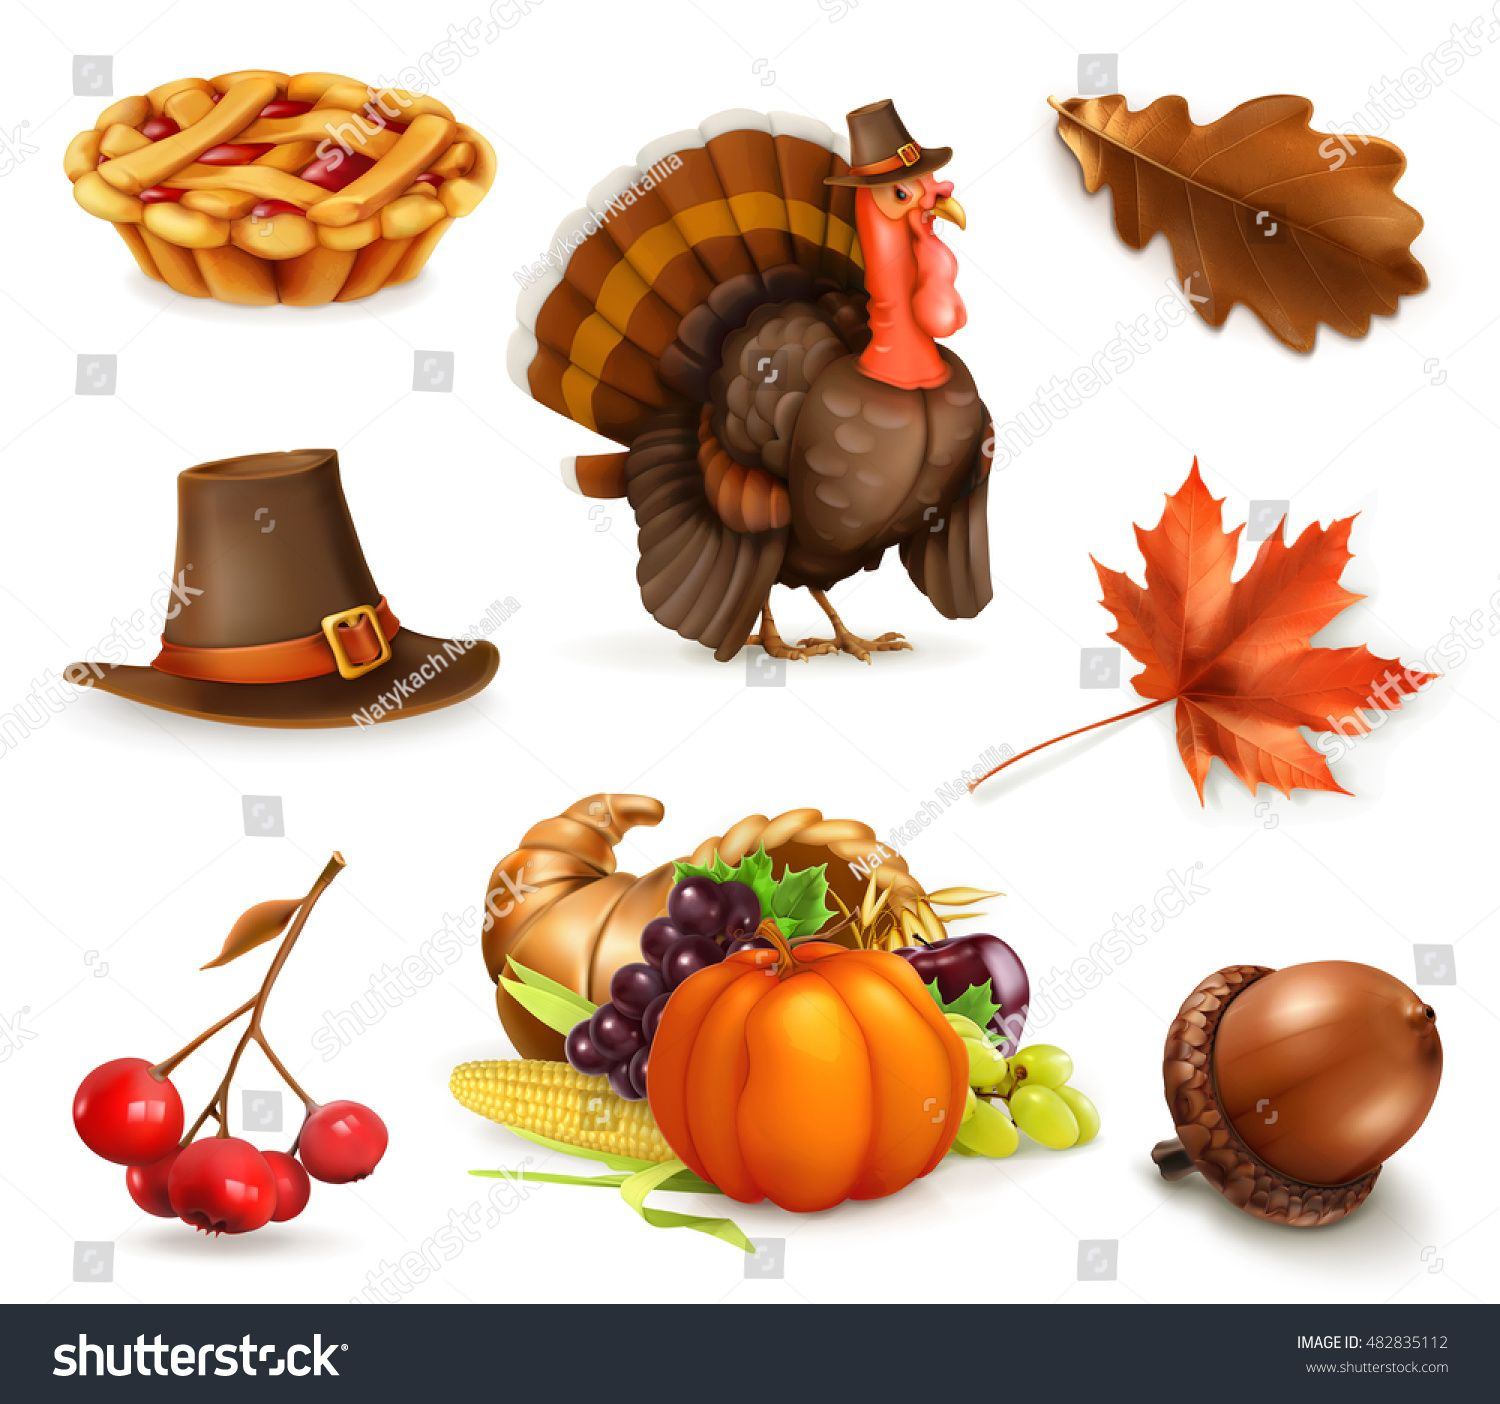 Happy Thanksgiving cartoon character and objects. 3d